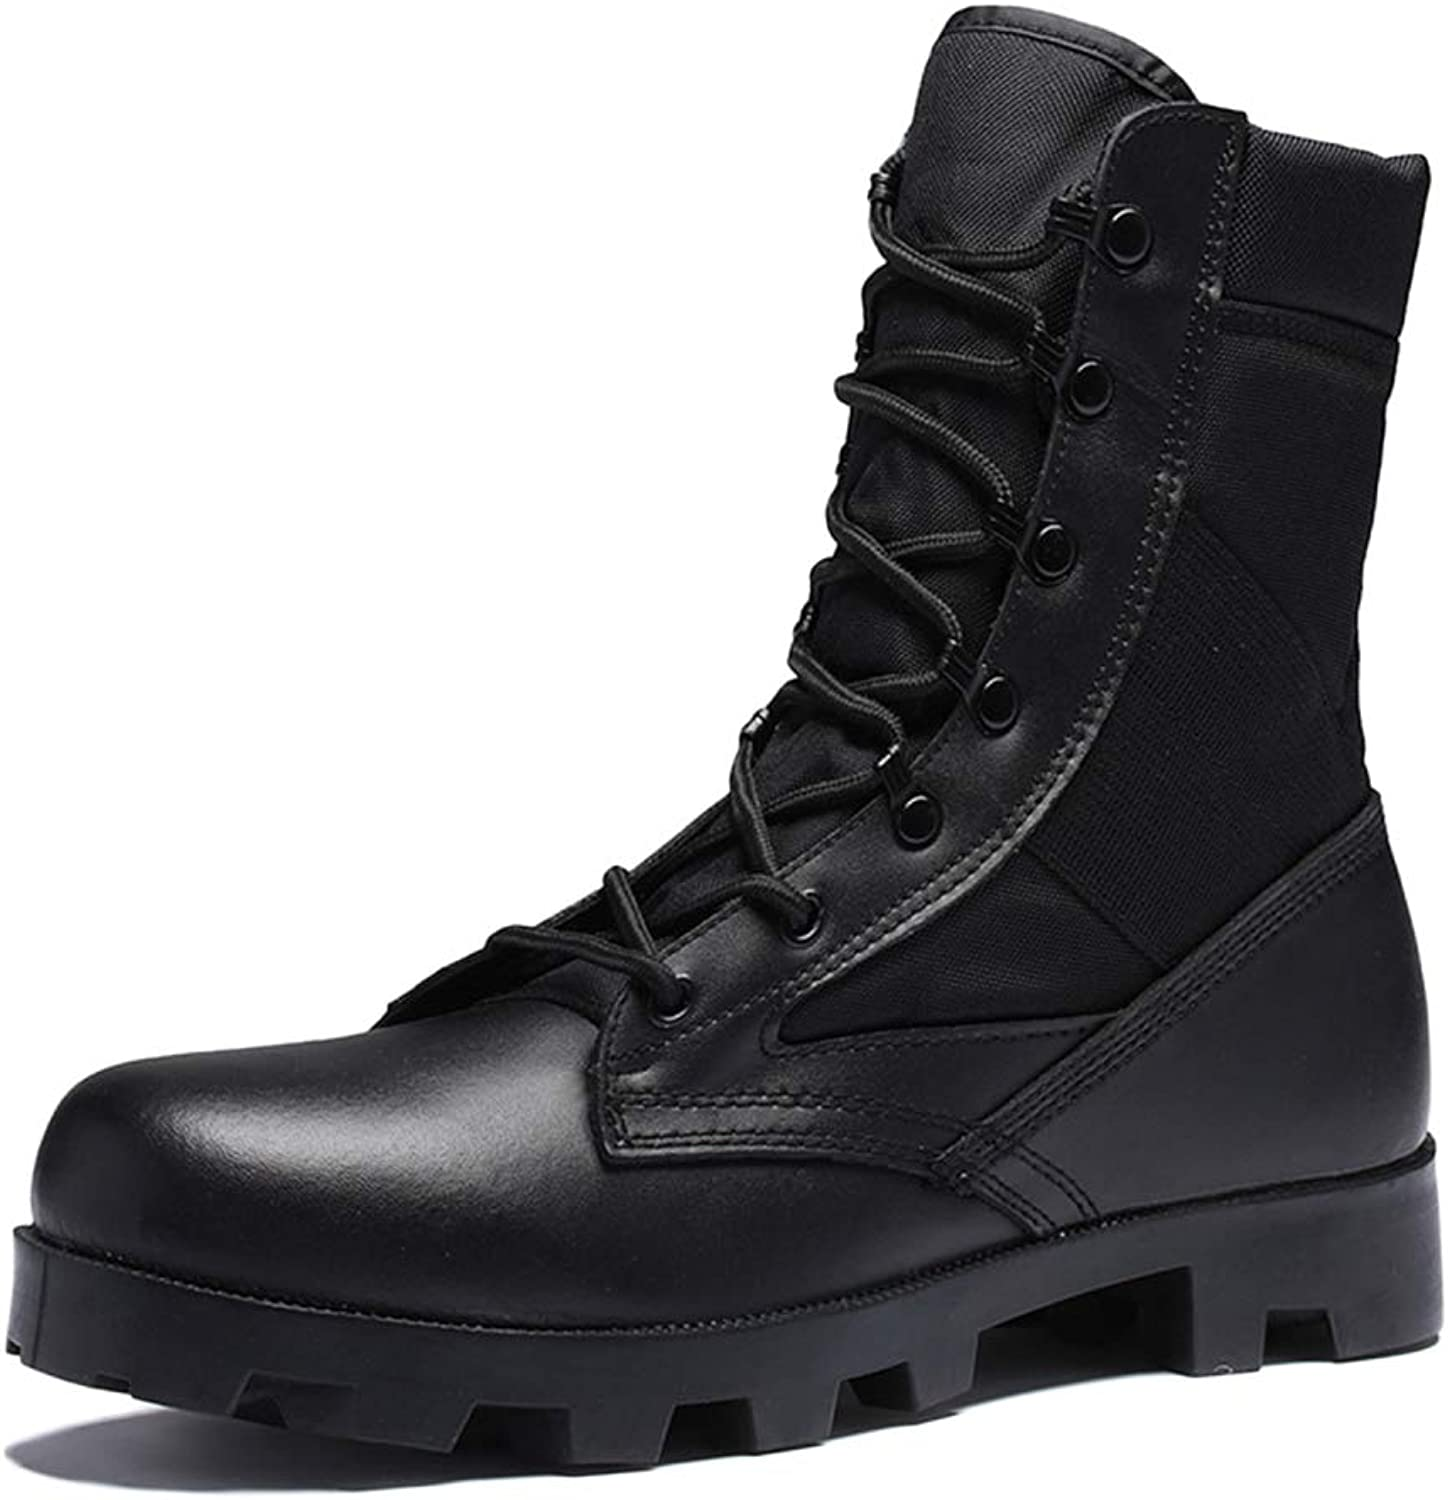 Nihiug Mens Doc Martin Boots Adult Boots Safety Boots Classic Leather Wear-Resistant High-top Military Boots